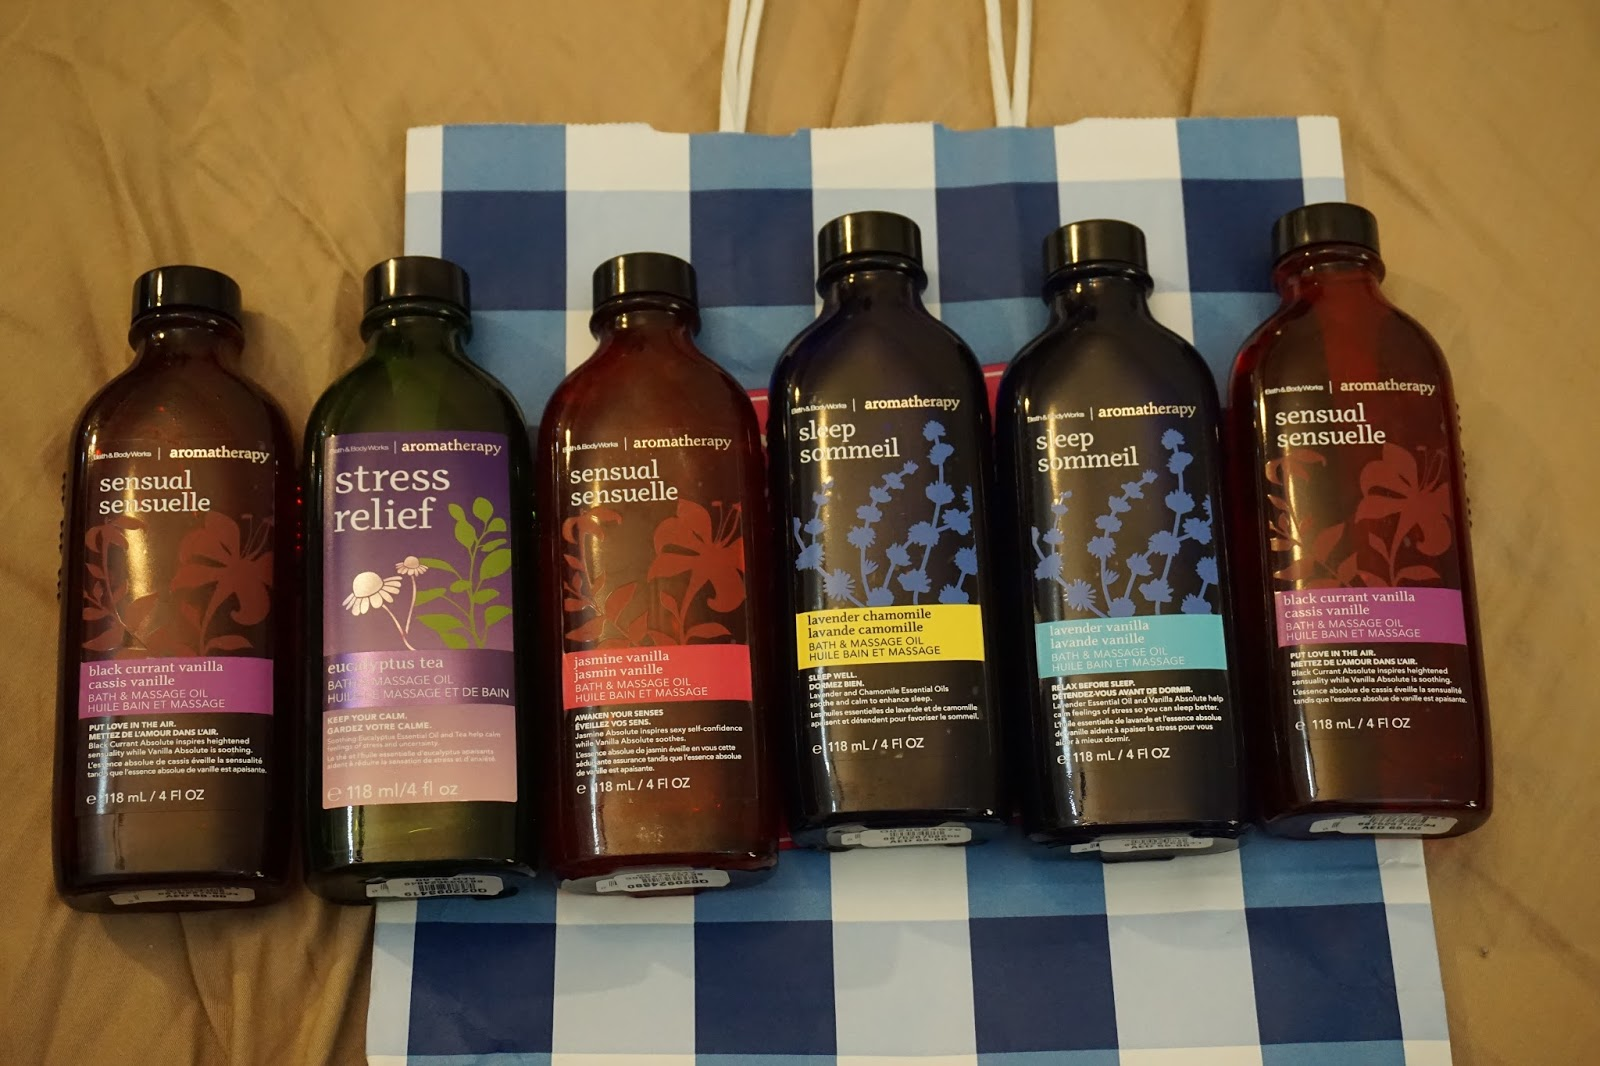 Bath And Body Works Massage Oil As Lube